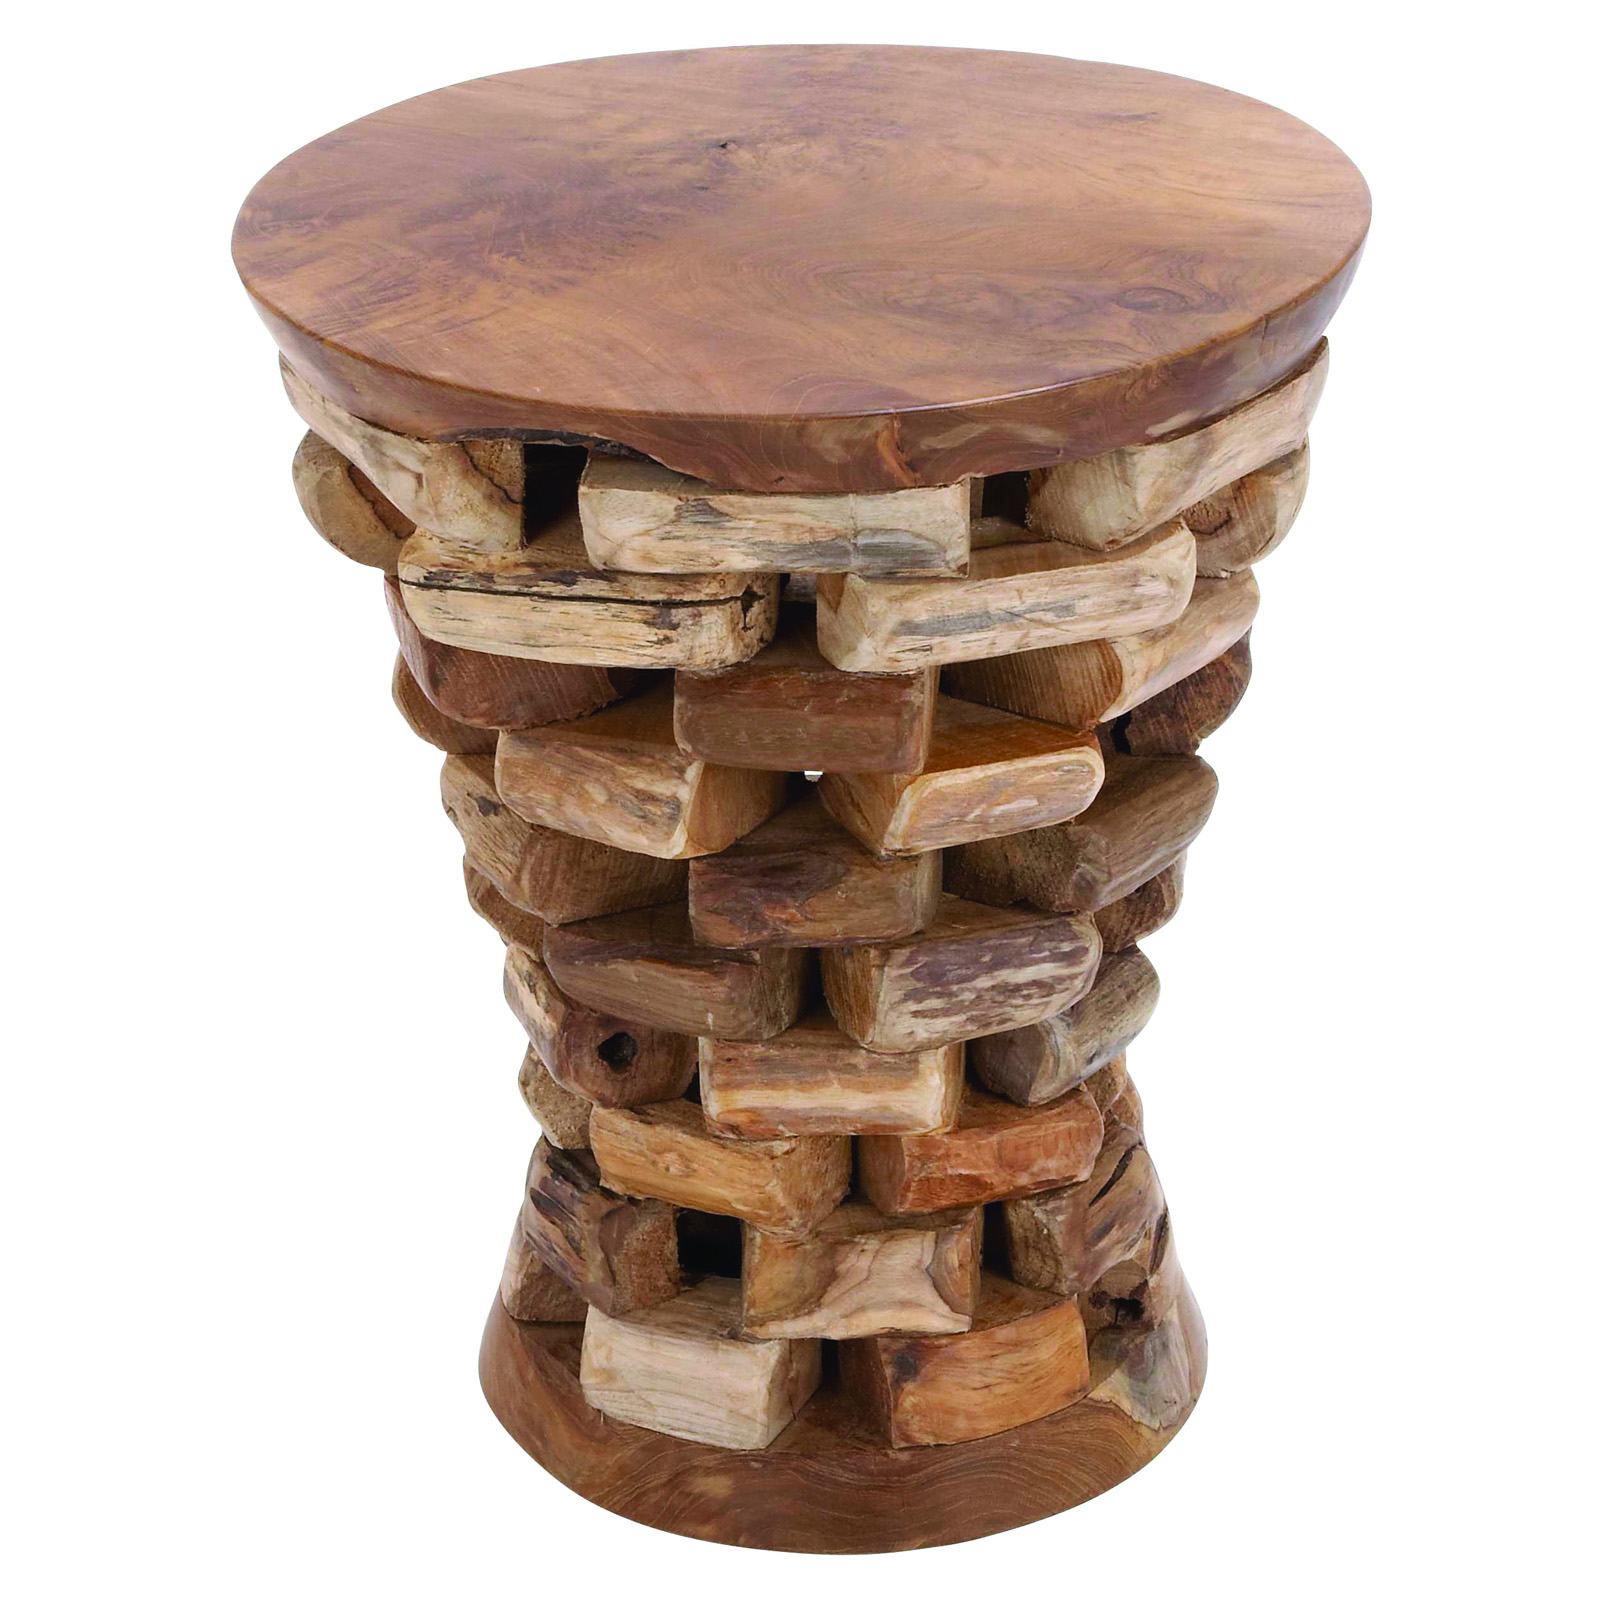 benzara round shaped teak wooden accent table in natural rich textures end tables at hayneedle. Black Bedroom Furniture Sets. Home Design Ideas